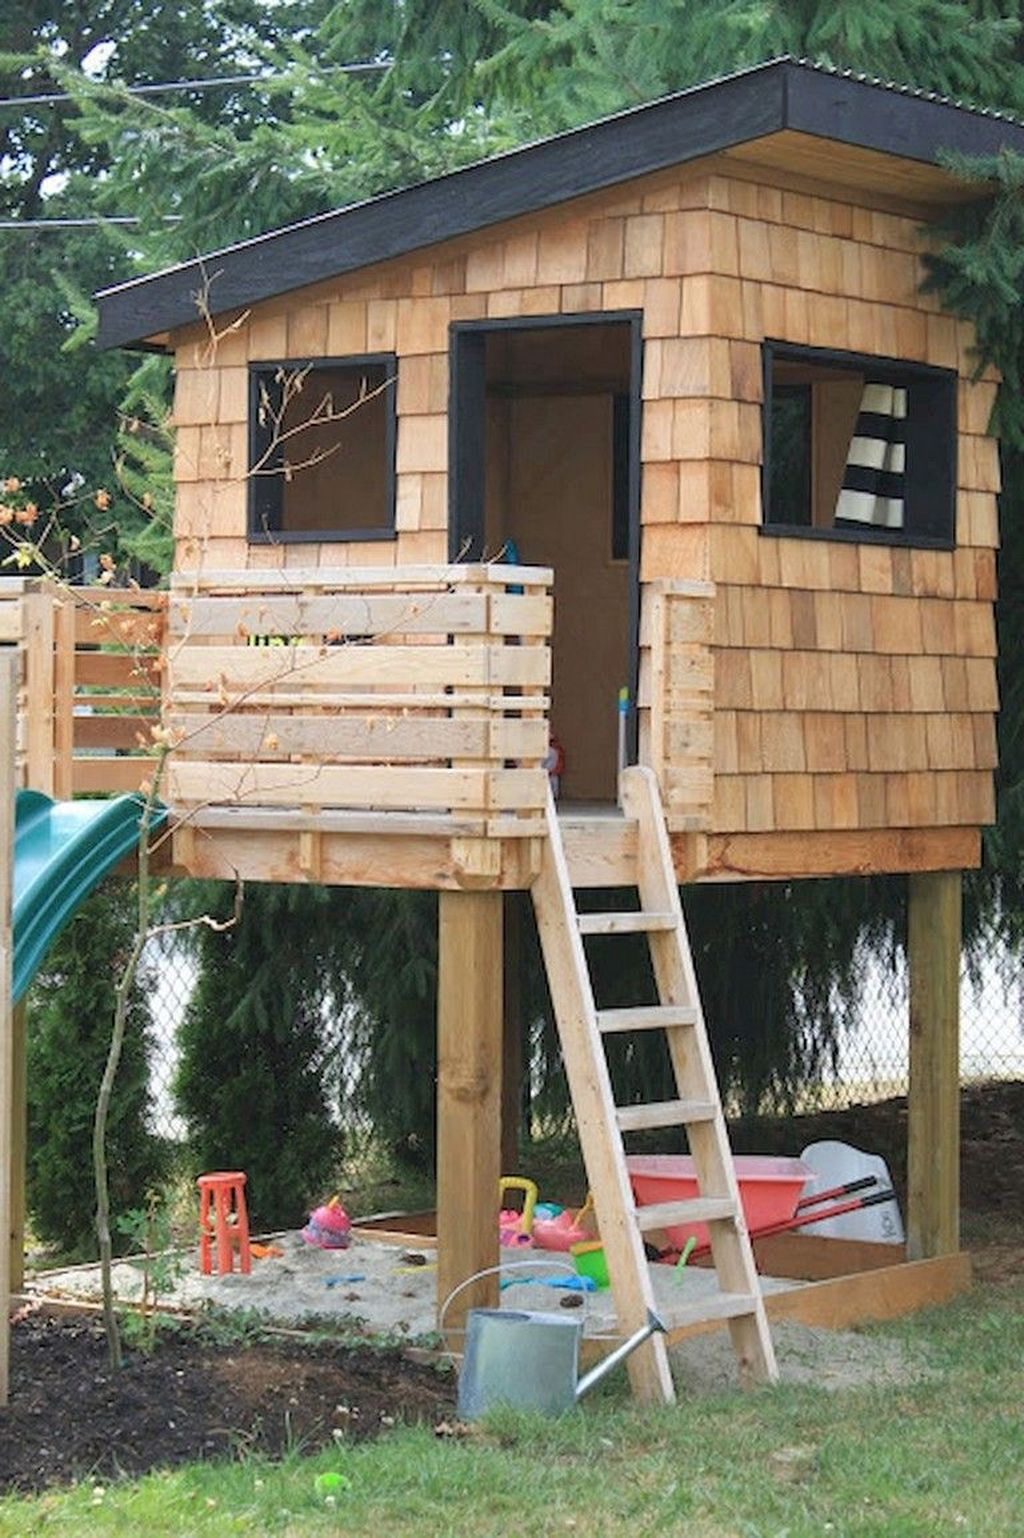 Incredible Magical Backyard Design Ideas For Your Kids 27